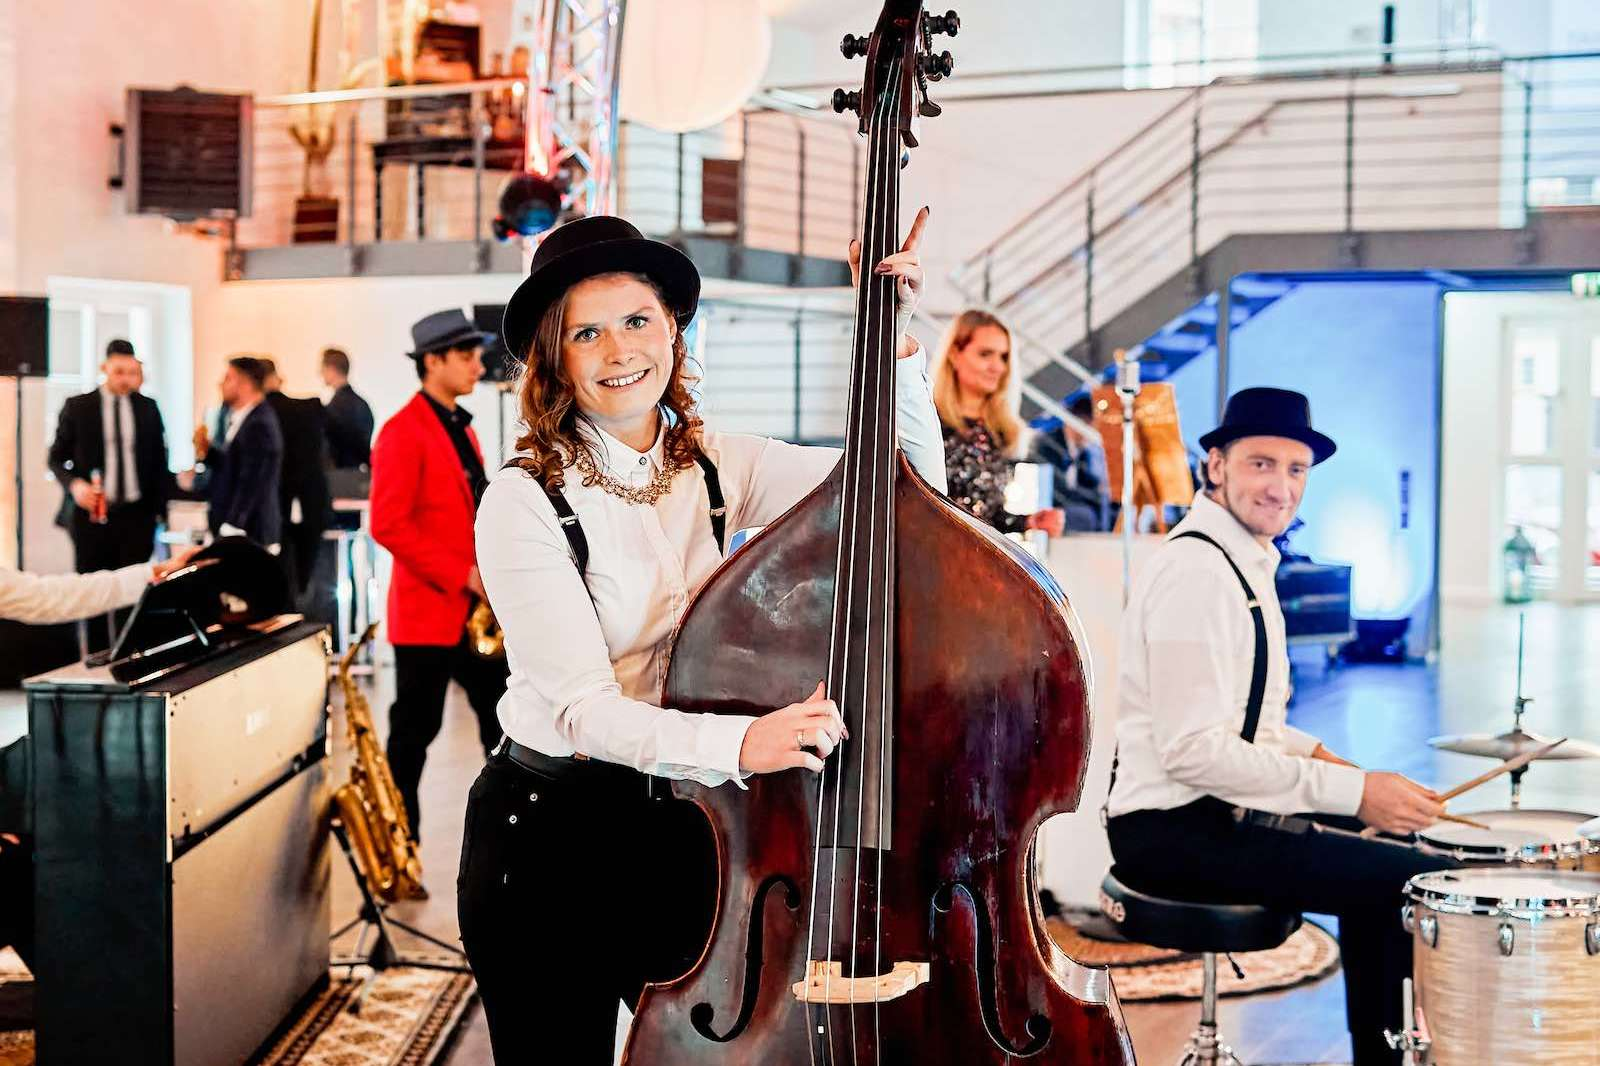 Jazzband | Live | Band | Hochzeit | Hannover | Popband | Partyband | Loungeband | Sektempfang | Party | Trauung | Dinner | Buchen | Mieten | Lehmann | Eventservice